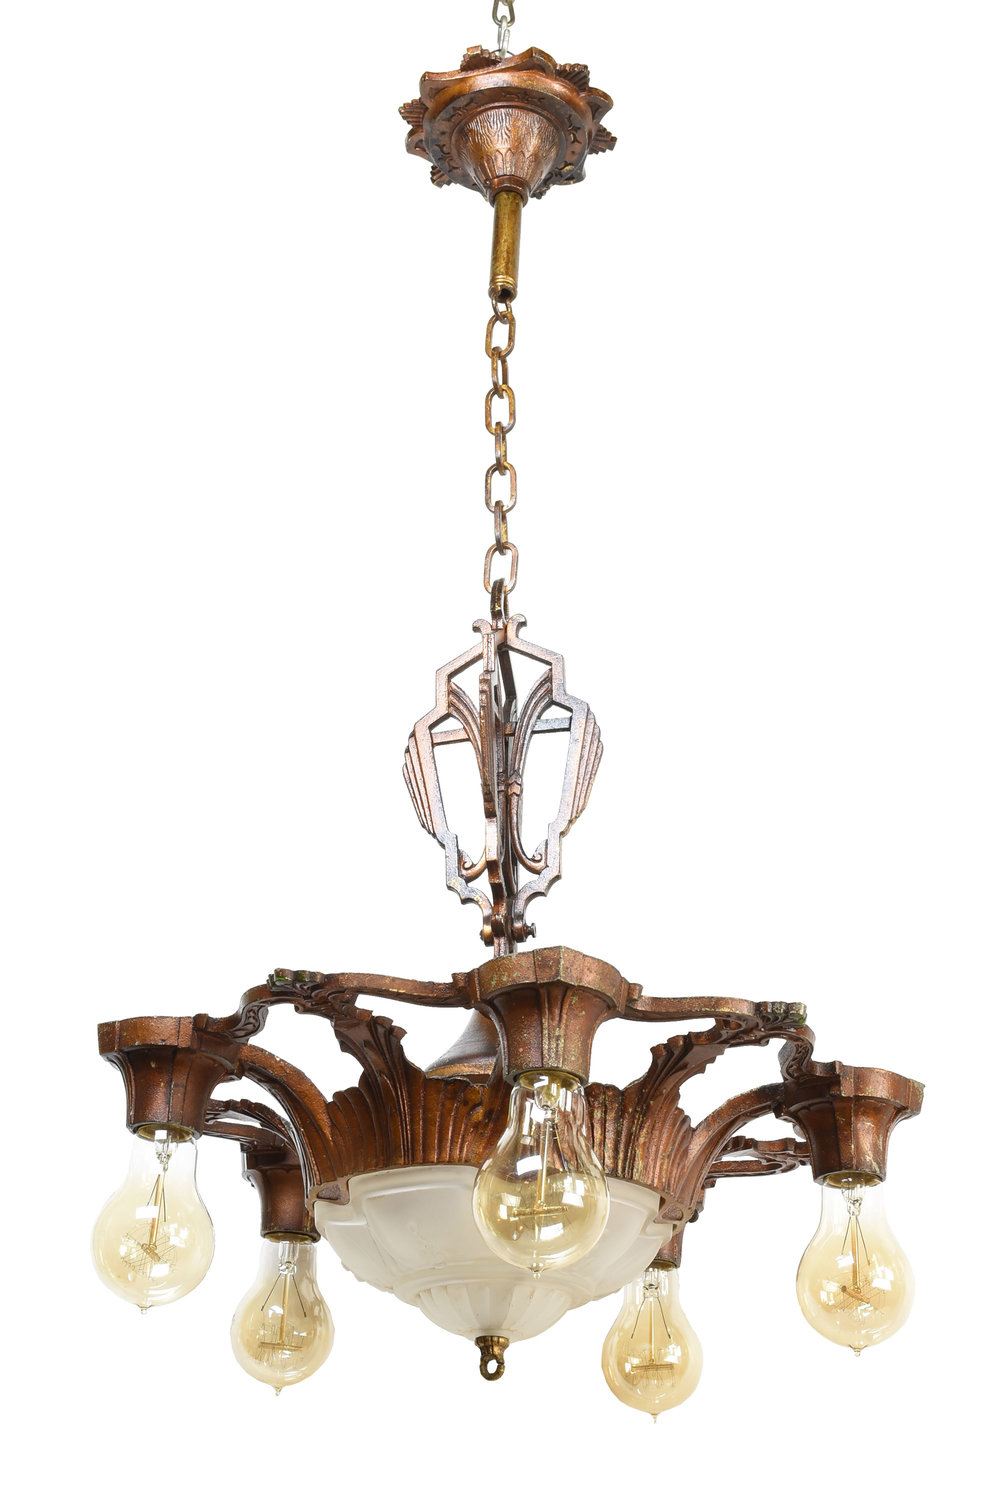 Vintage Chandelier With Frosted Glass Bowl And 5 Lights Architectural Antiques